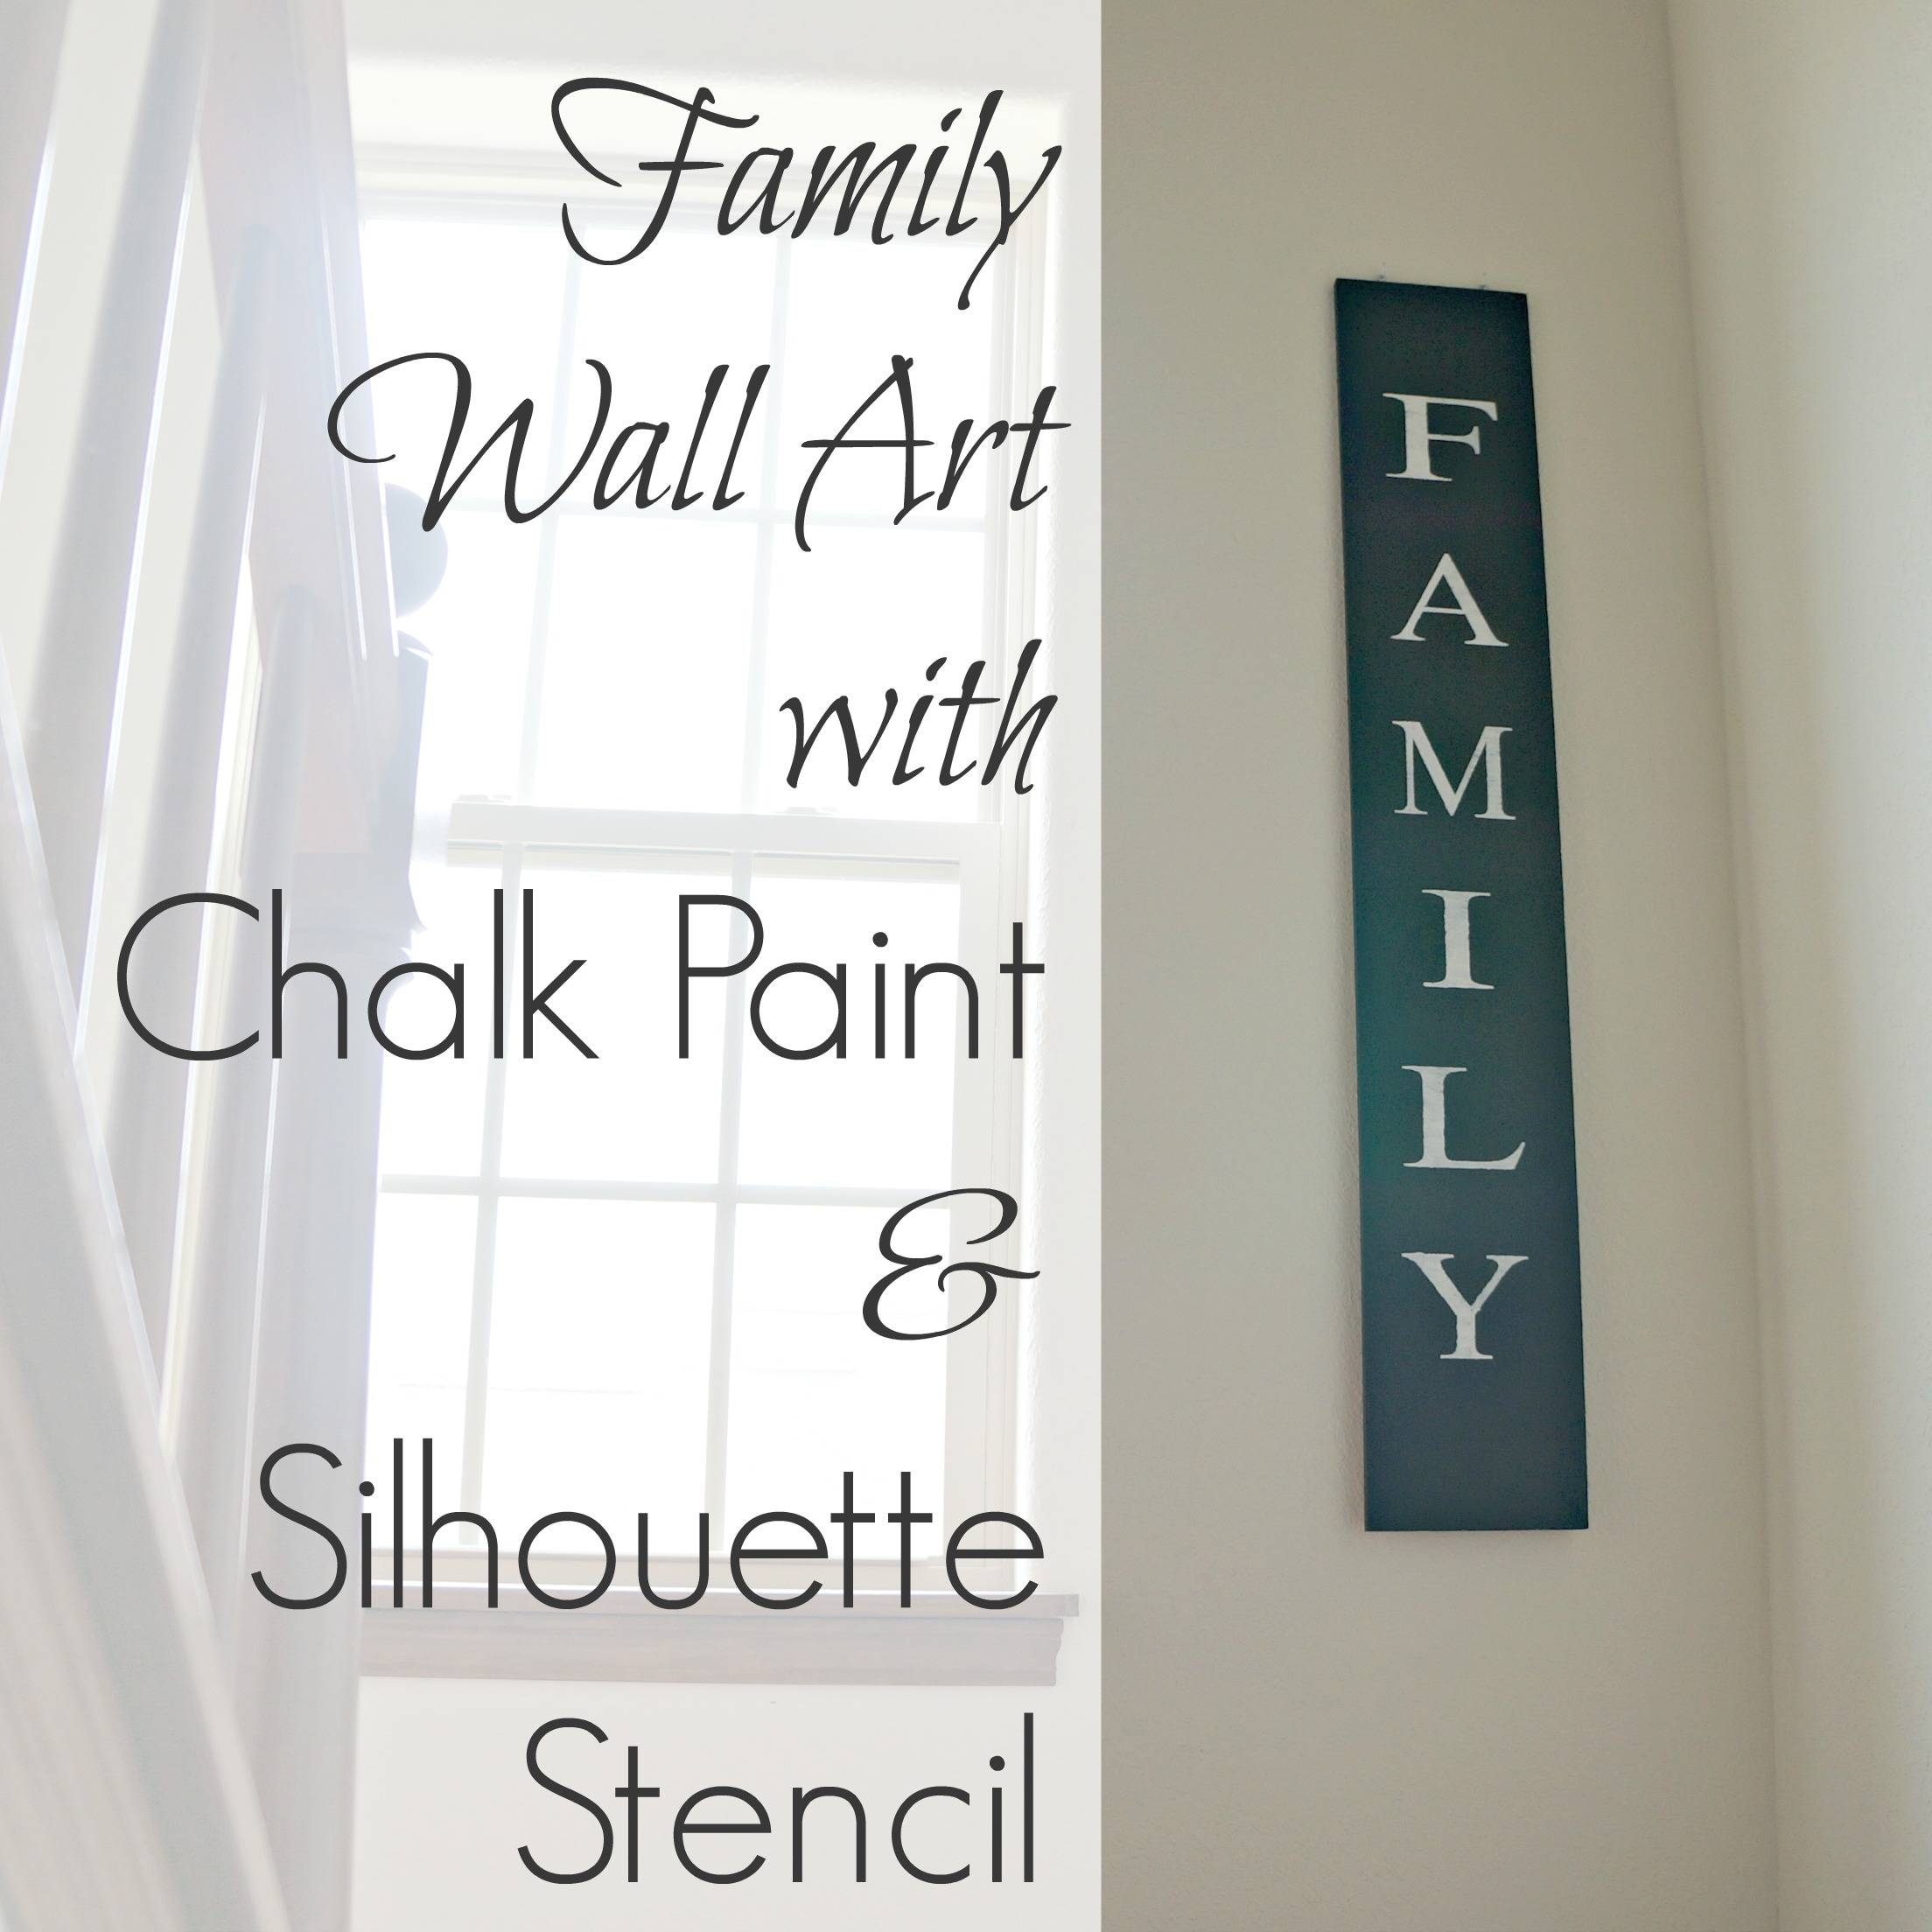 Family Wall Art With Chalk Paint And Silhouette Stencil – Creative Inside Newest Family Photo Wall Art (View 16 of 25)